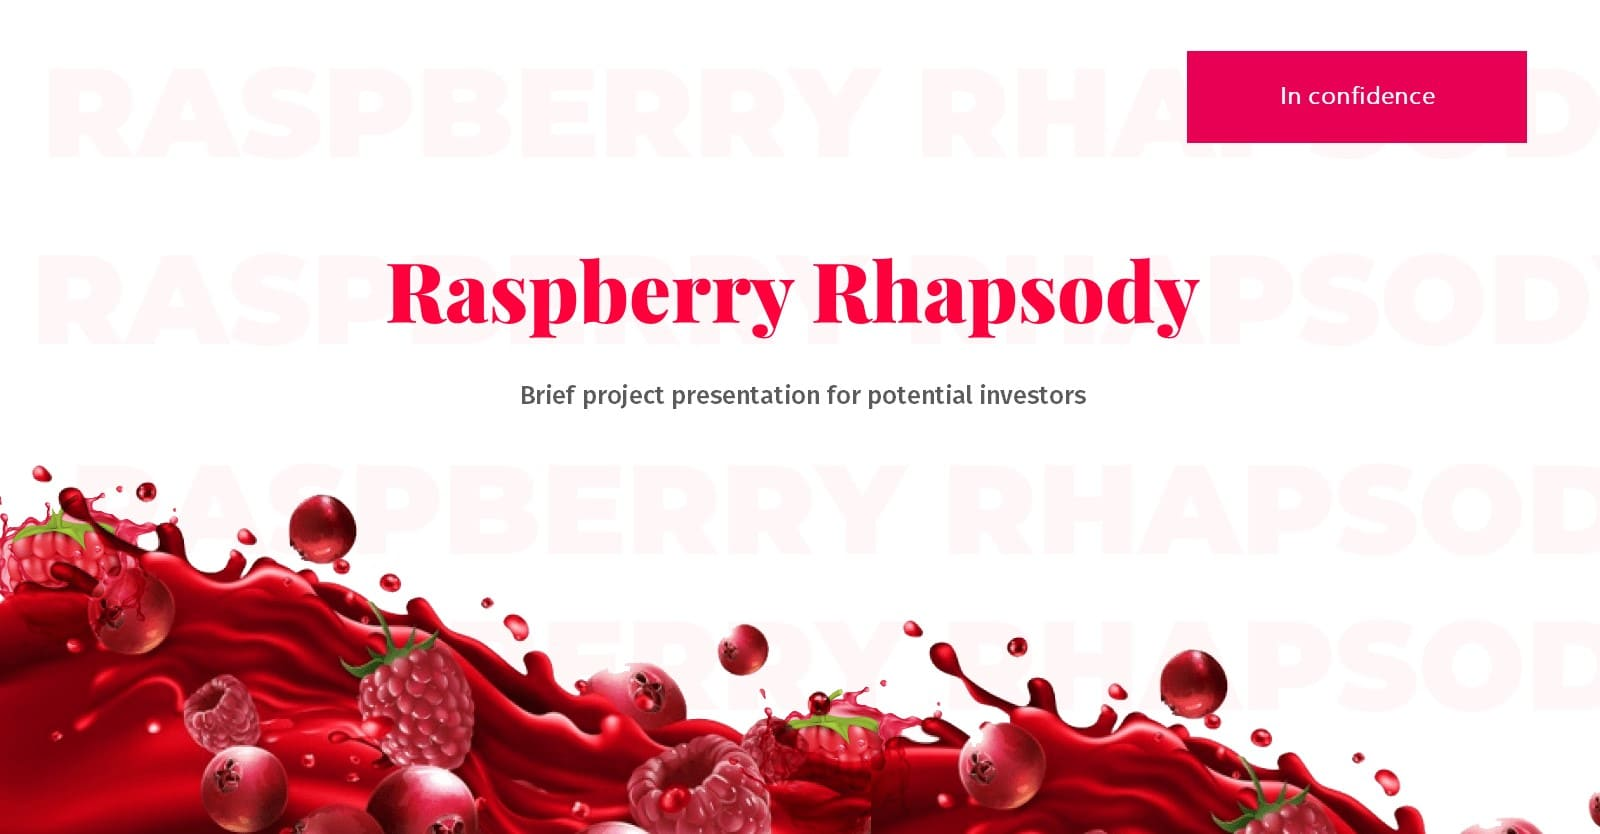 Feminine Presentation: Raspberry Powerpoint, Google Slides, Figma & Keynote Templates - Slide1